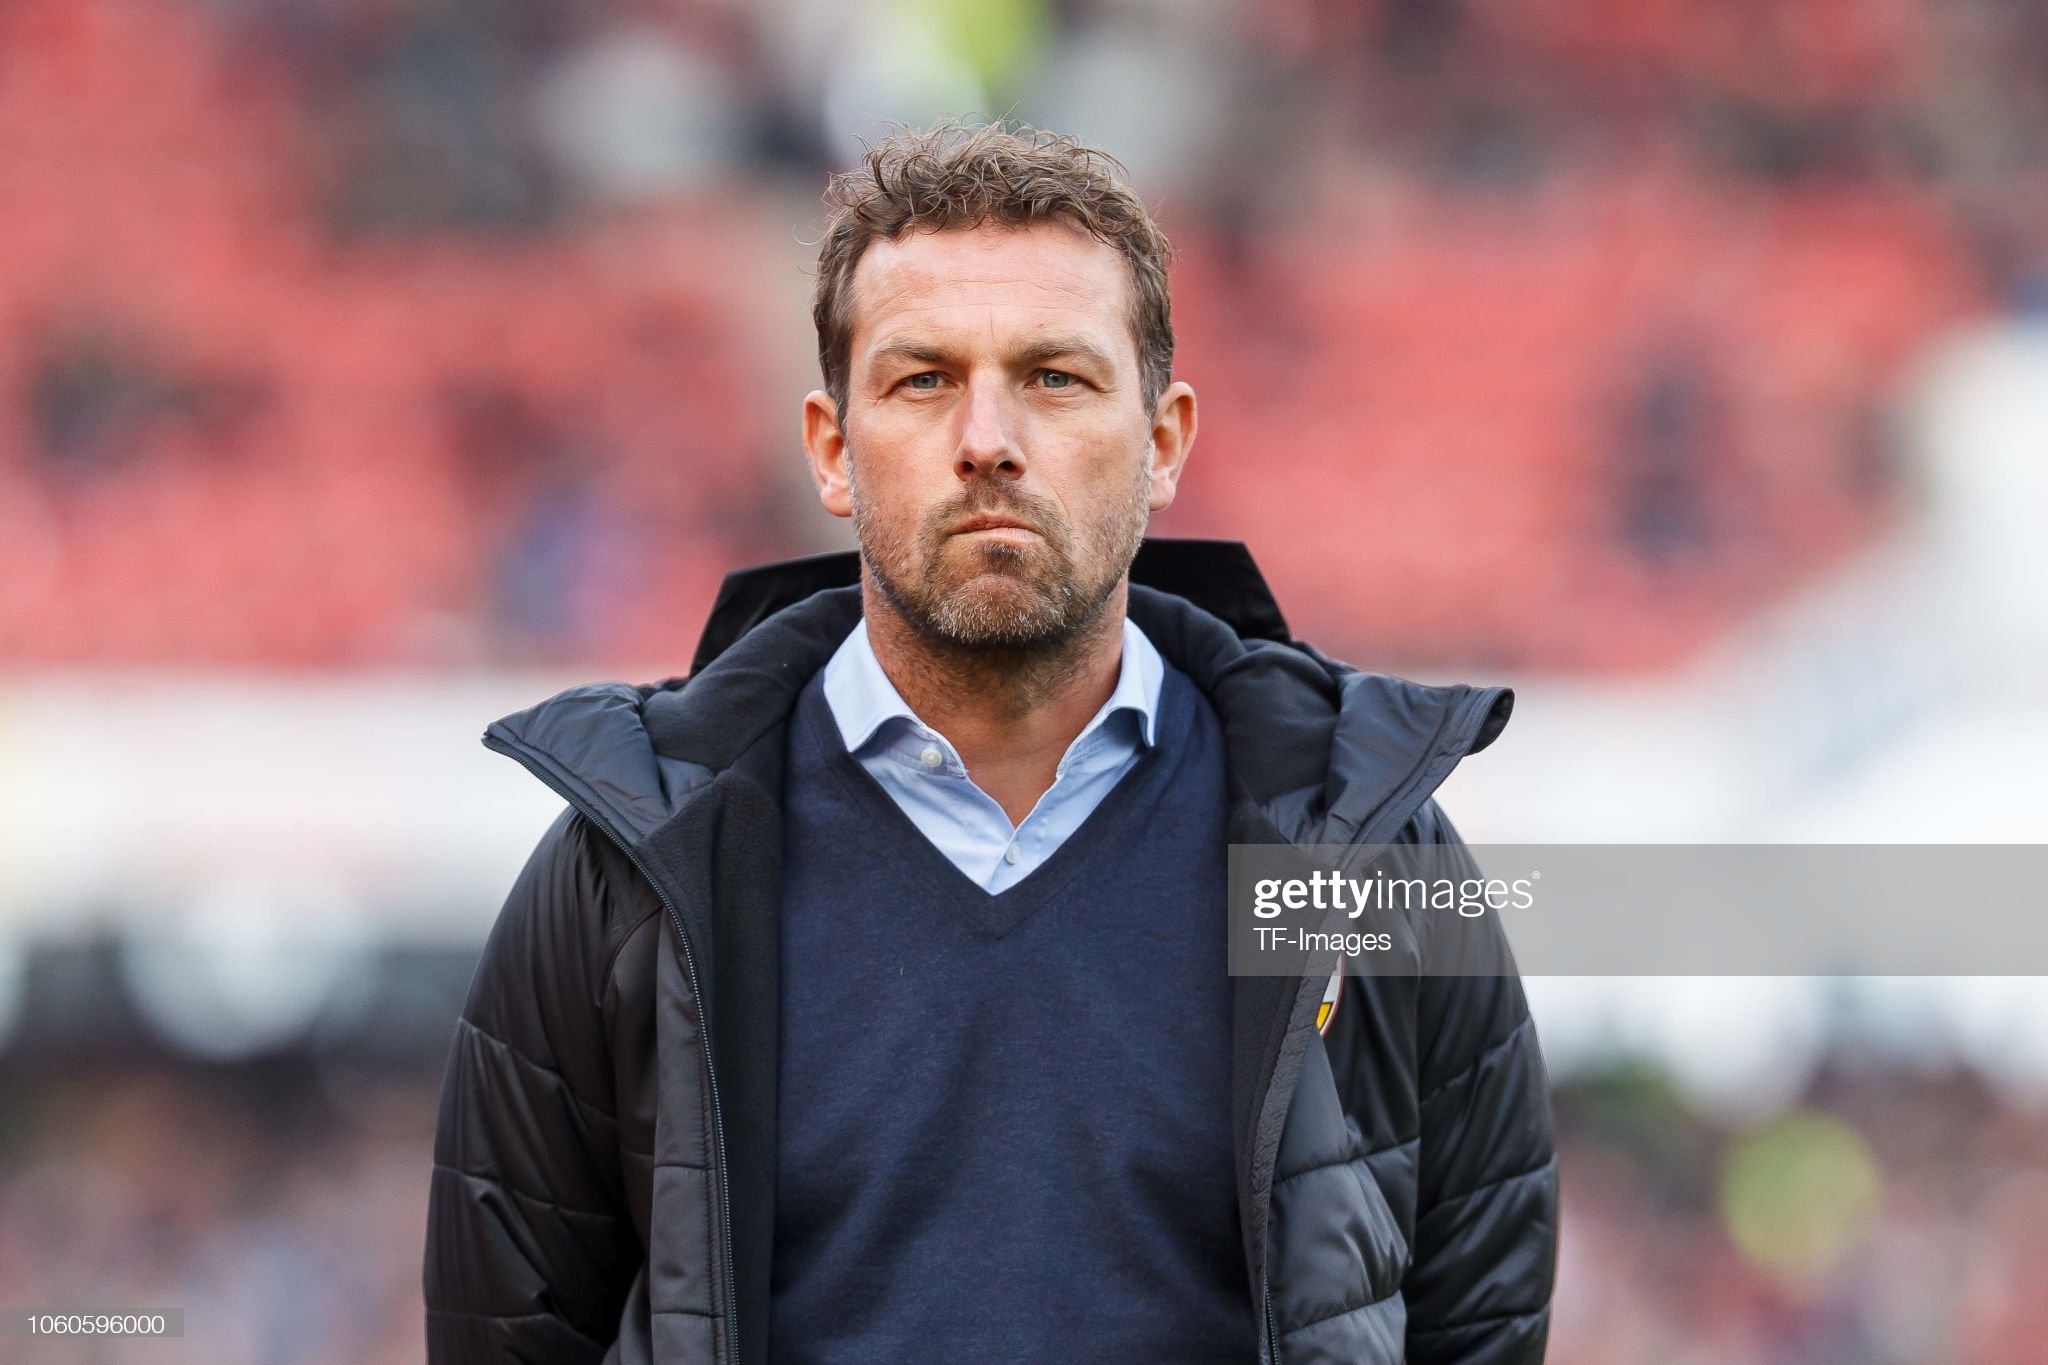 https://media.gettyimages.com/photos/head-coach-markus-weinzierl-of-vfb-stuttgart-looks-on-during-the-1-picture-id1060596000?s=2048x2048